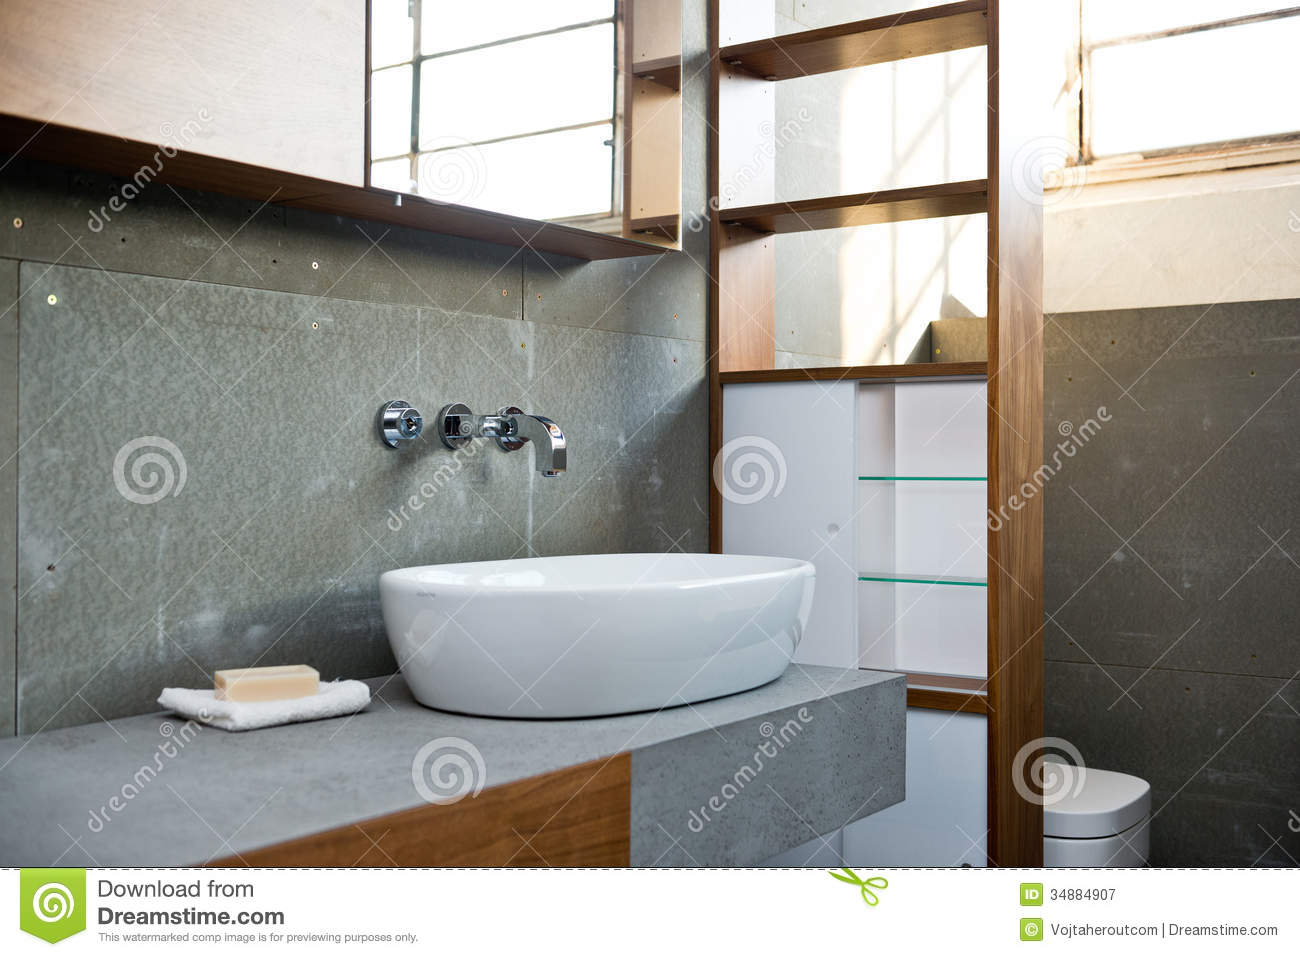 white bathroom interior with concrete walls and tiled floor stock